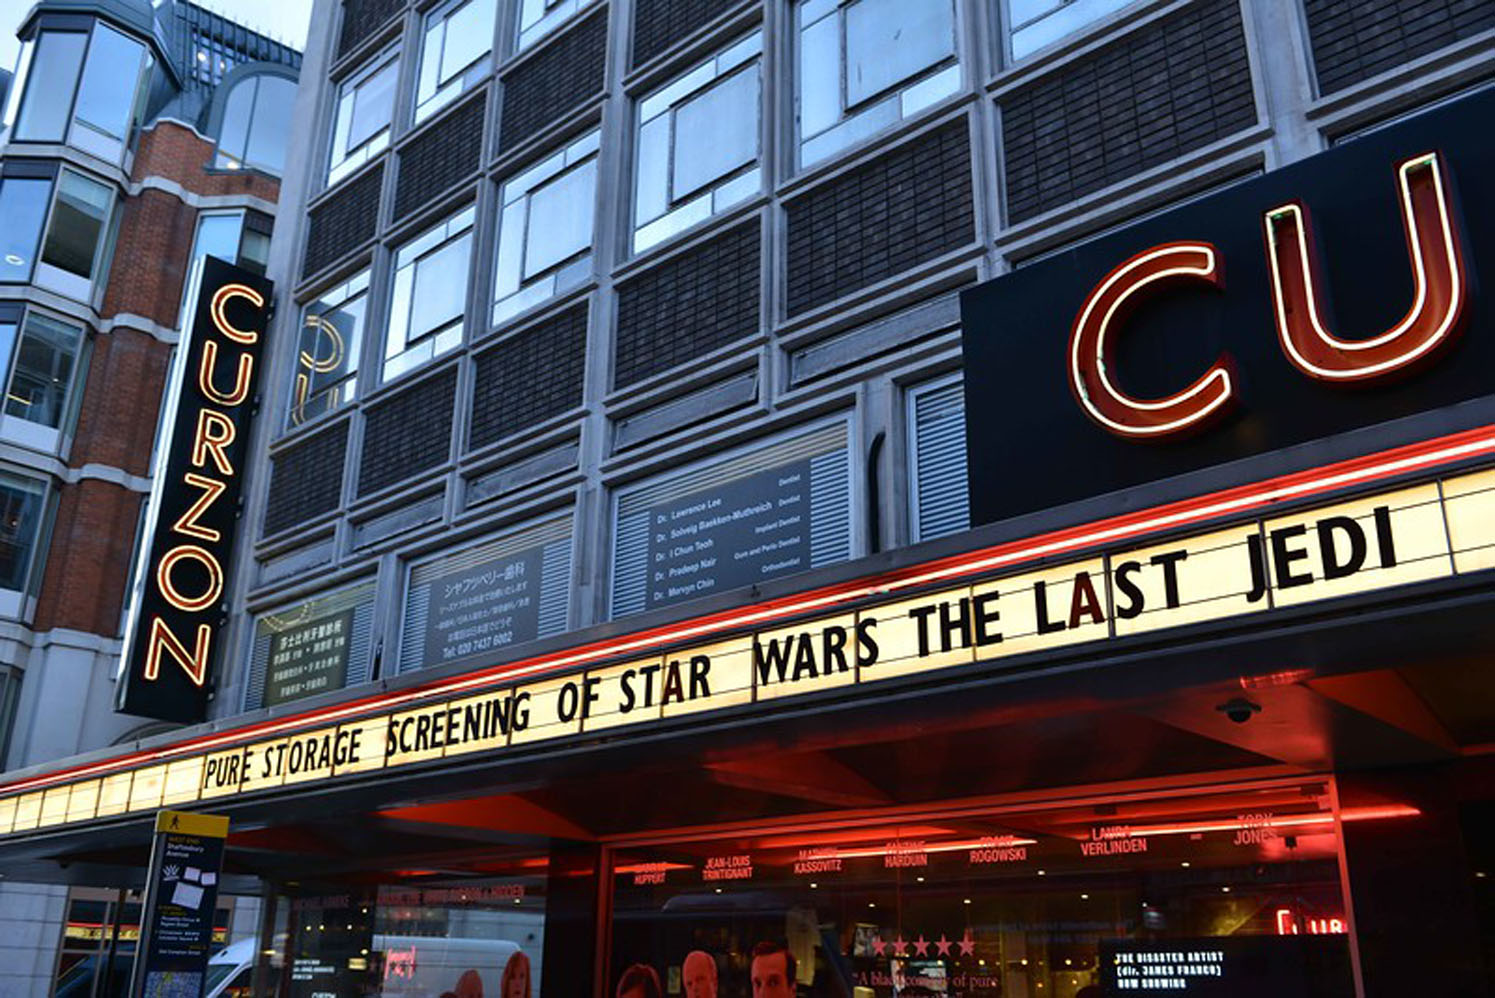 Private Star Wars Screening of the last Jedi